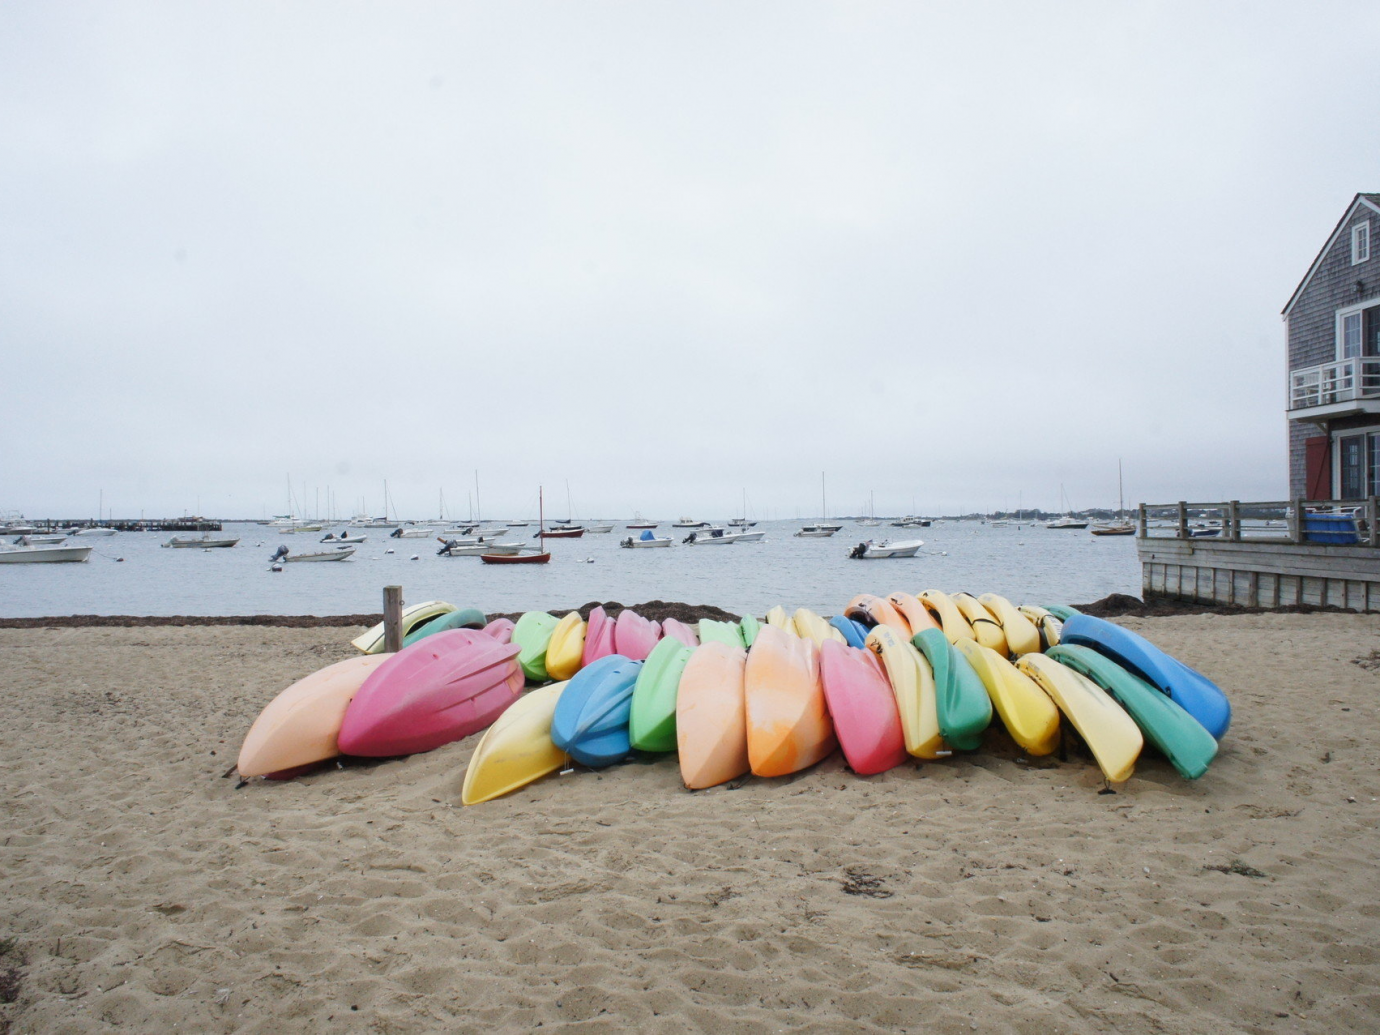 Canoes of assorted colors stacked on one another on a bay beach on a dreary day in Nantucket